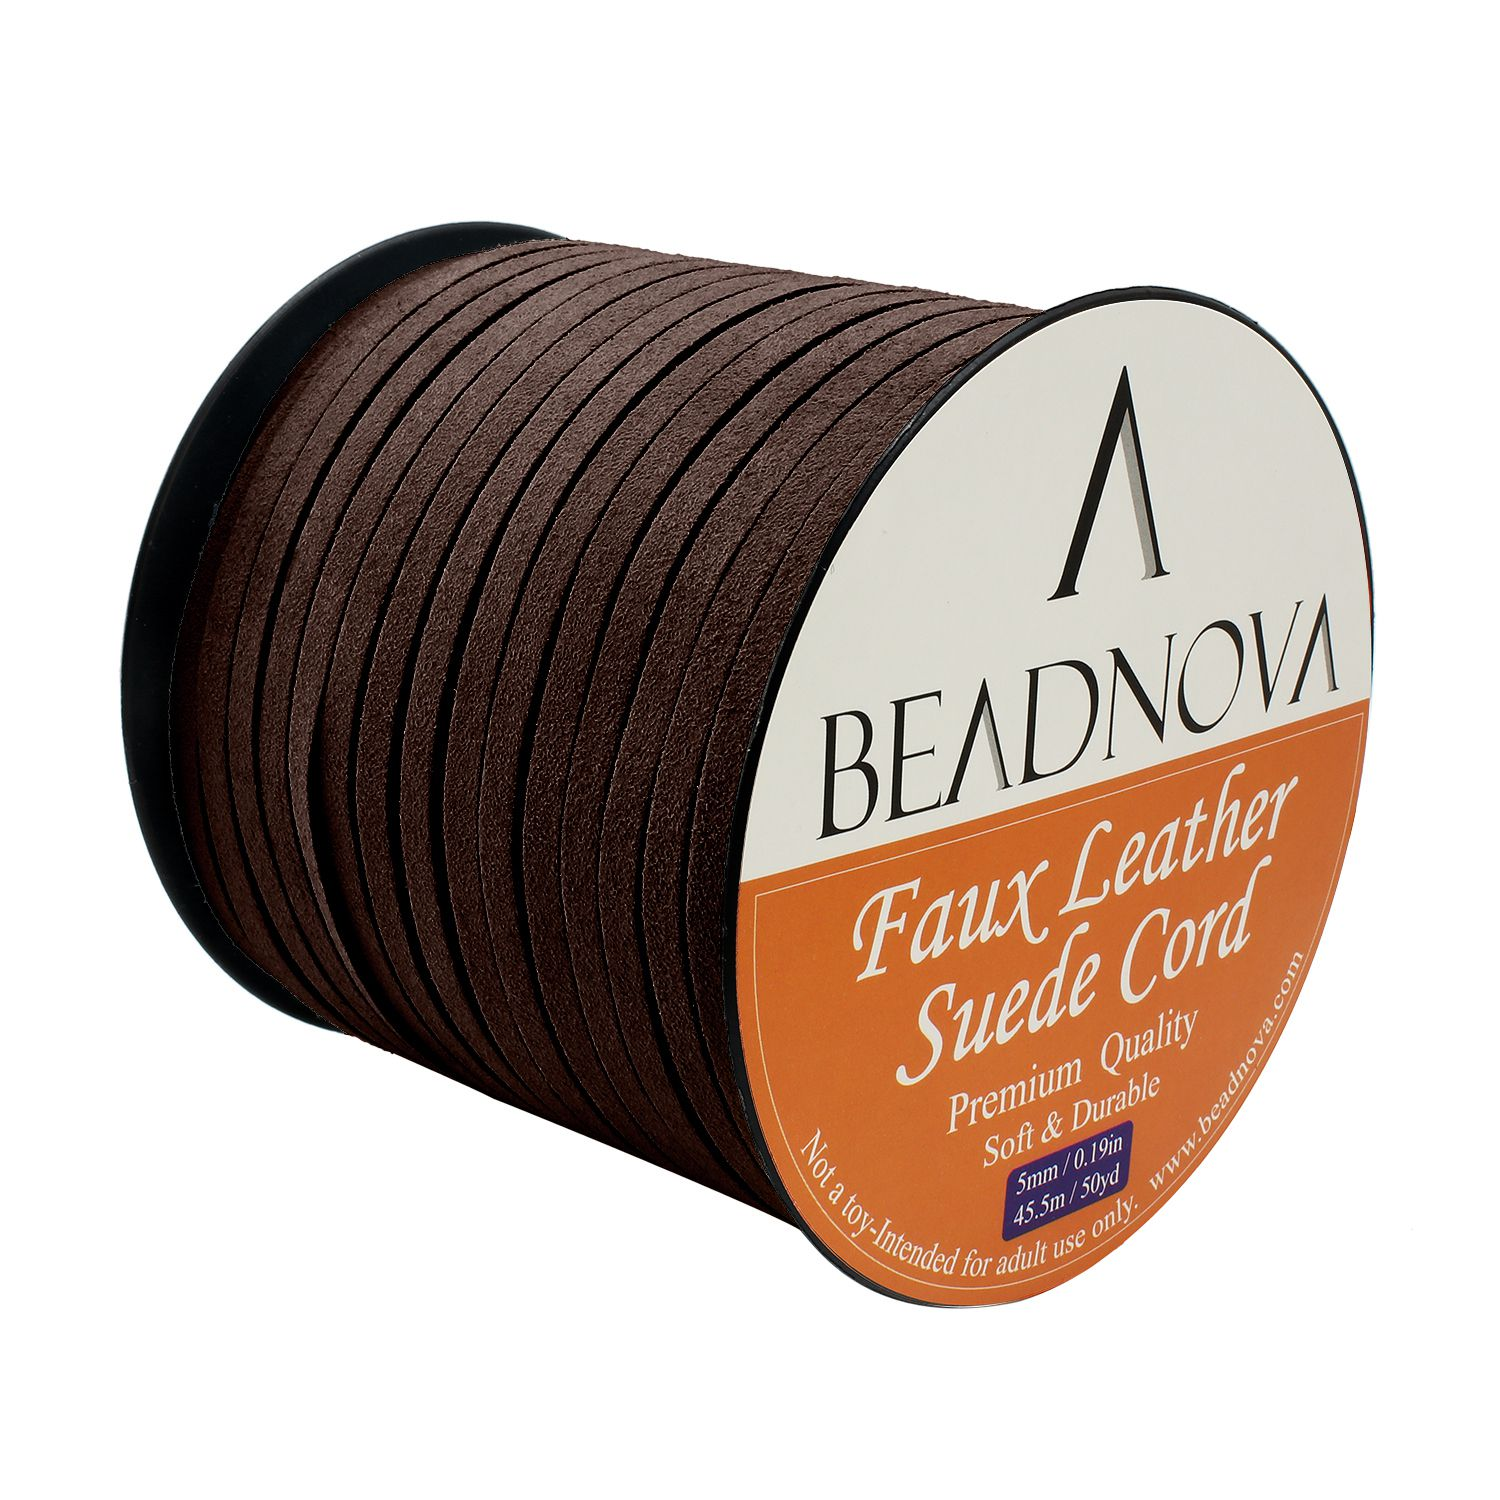 BEADNOVA Flat Leather Cord Fiber Lace Faux Leather Suede Cords Leather Strip Flat Thread String for Jewelry Making and Bracelets 4 Colors, 3.3yard, 5mm